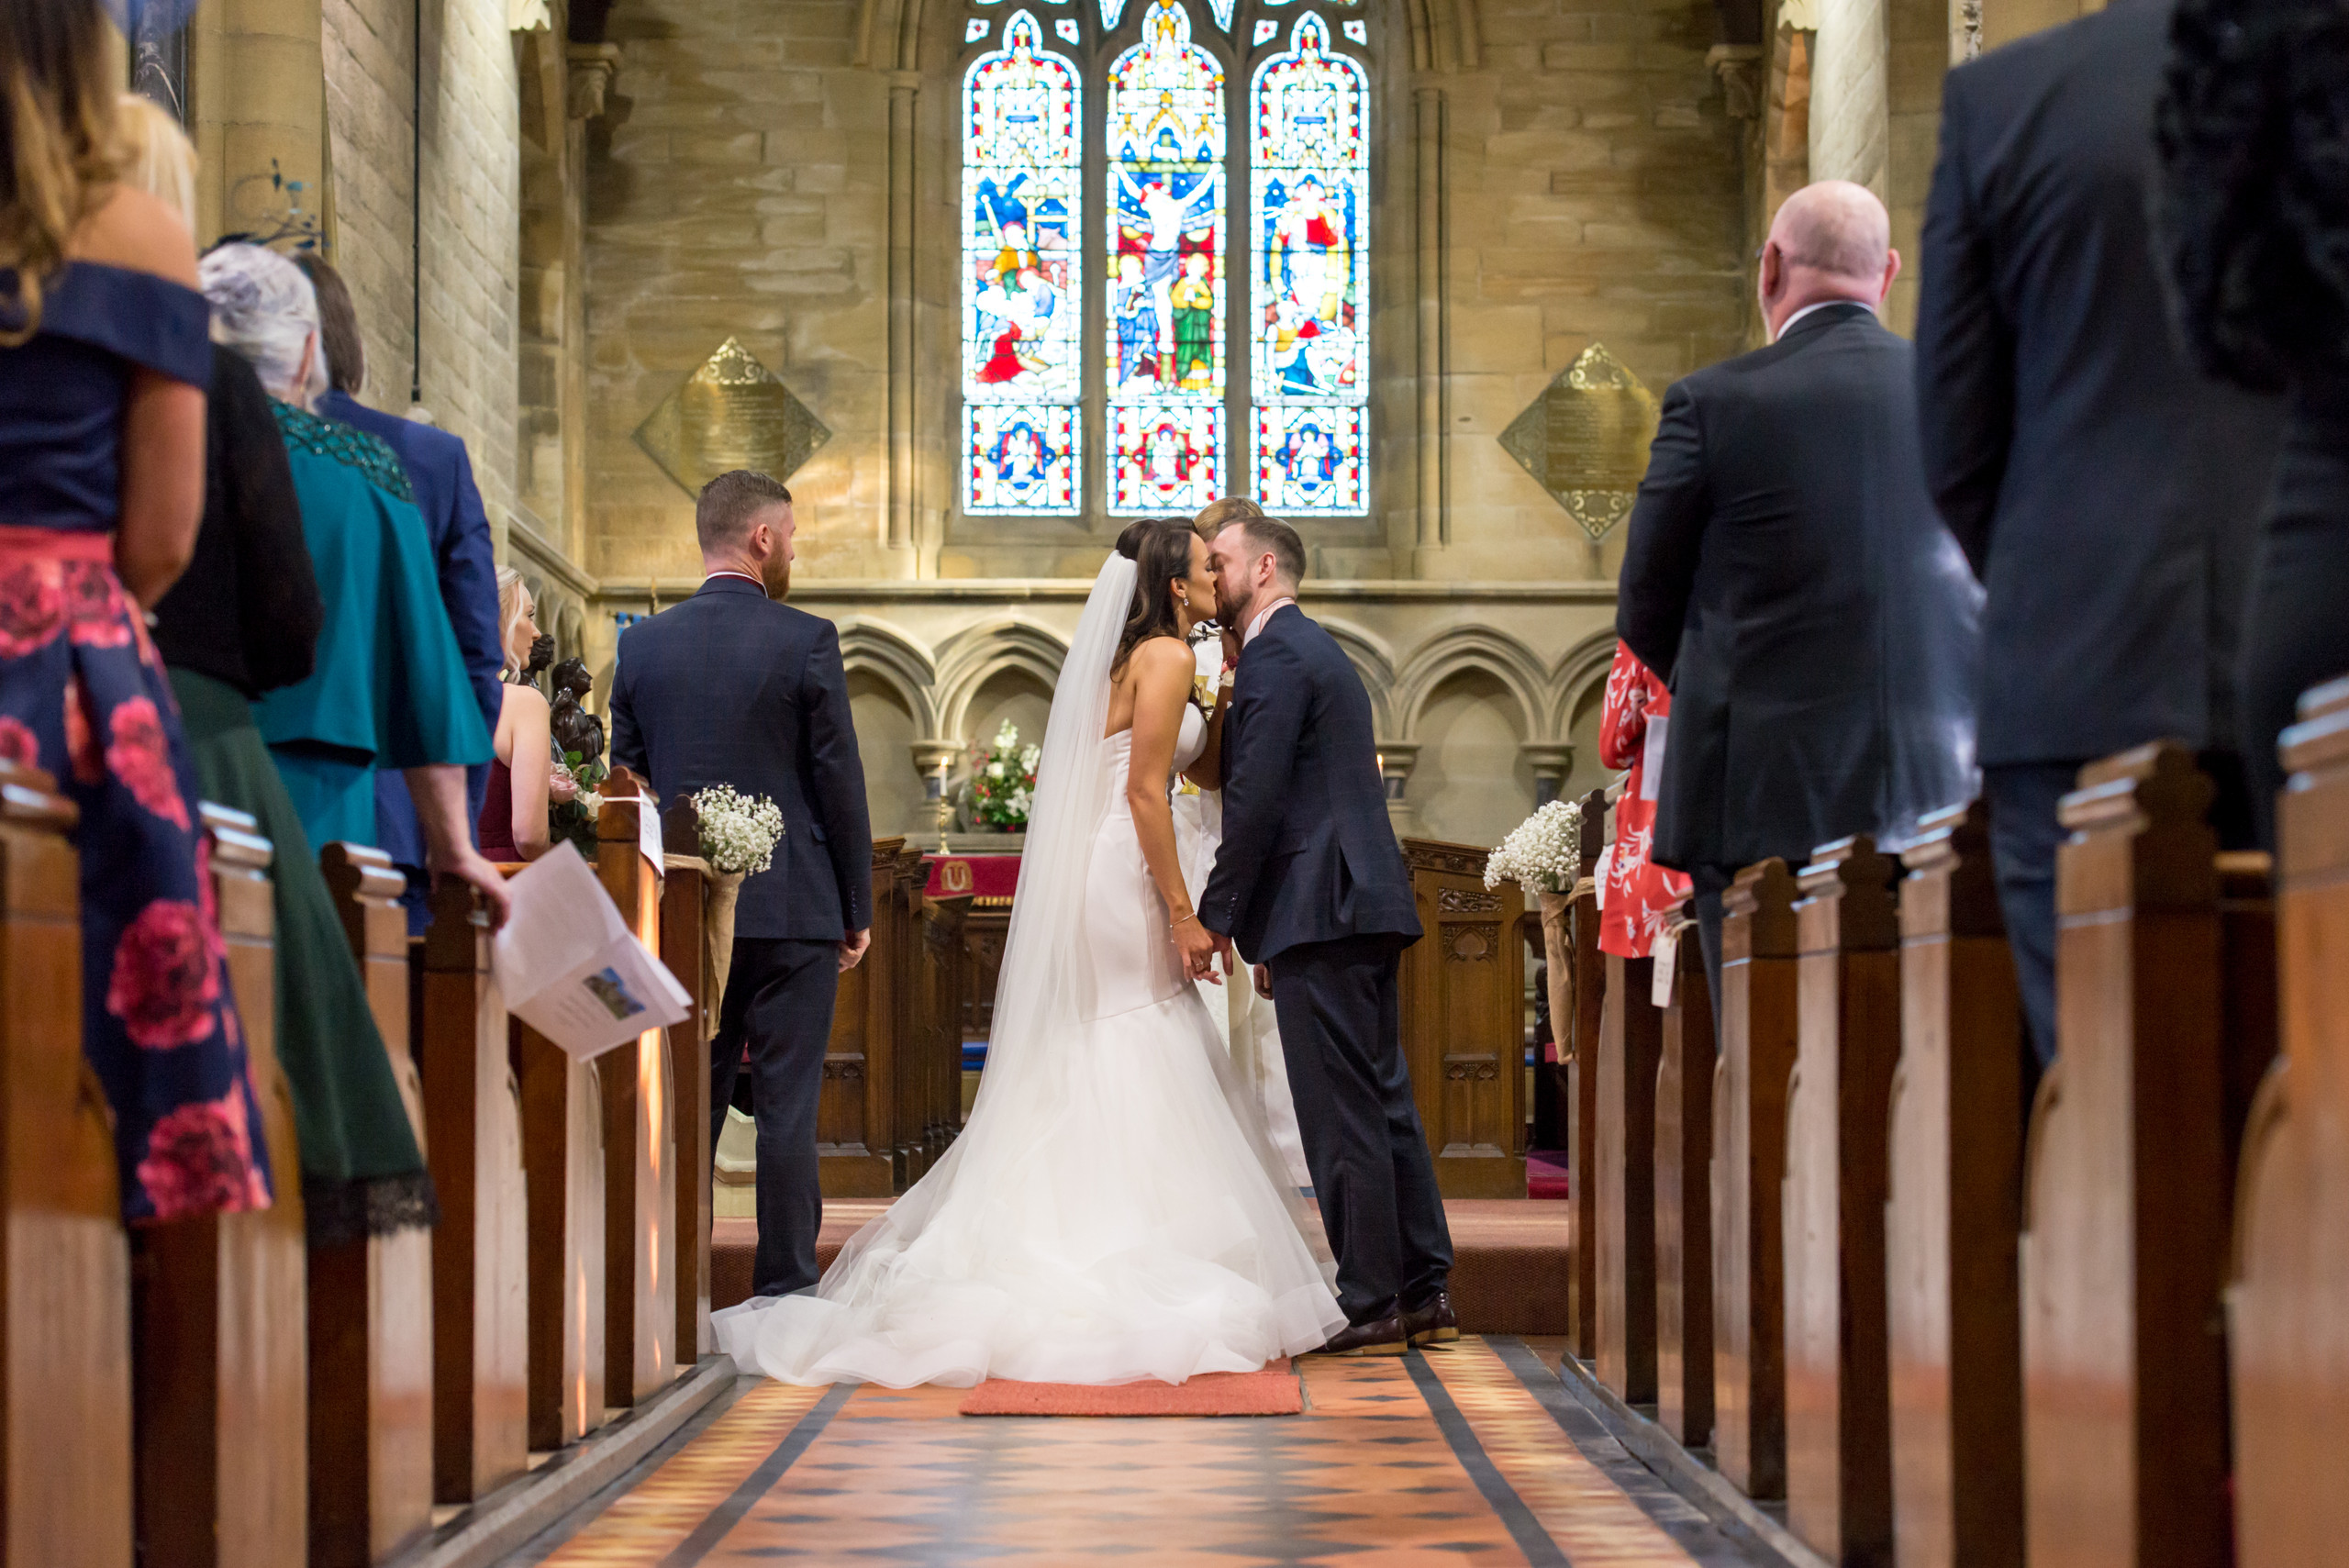 First kiss between husband and wife in church ceremony, photographed by Bride and Groom Wedding Photography in Northumberland church